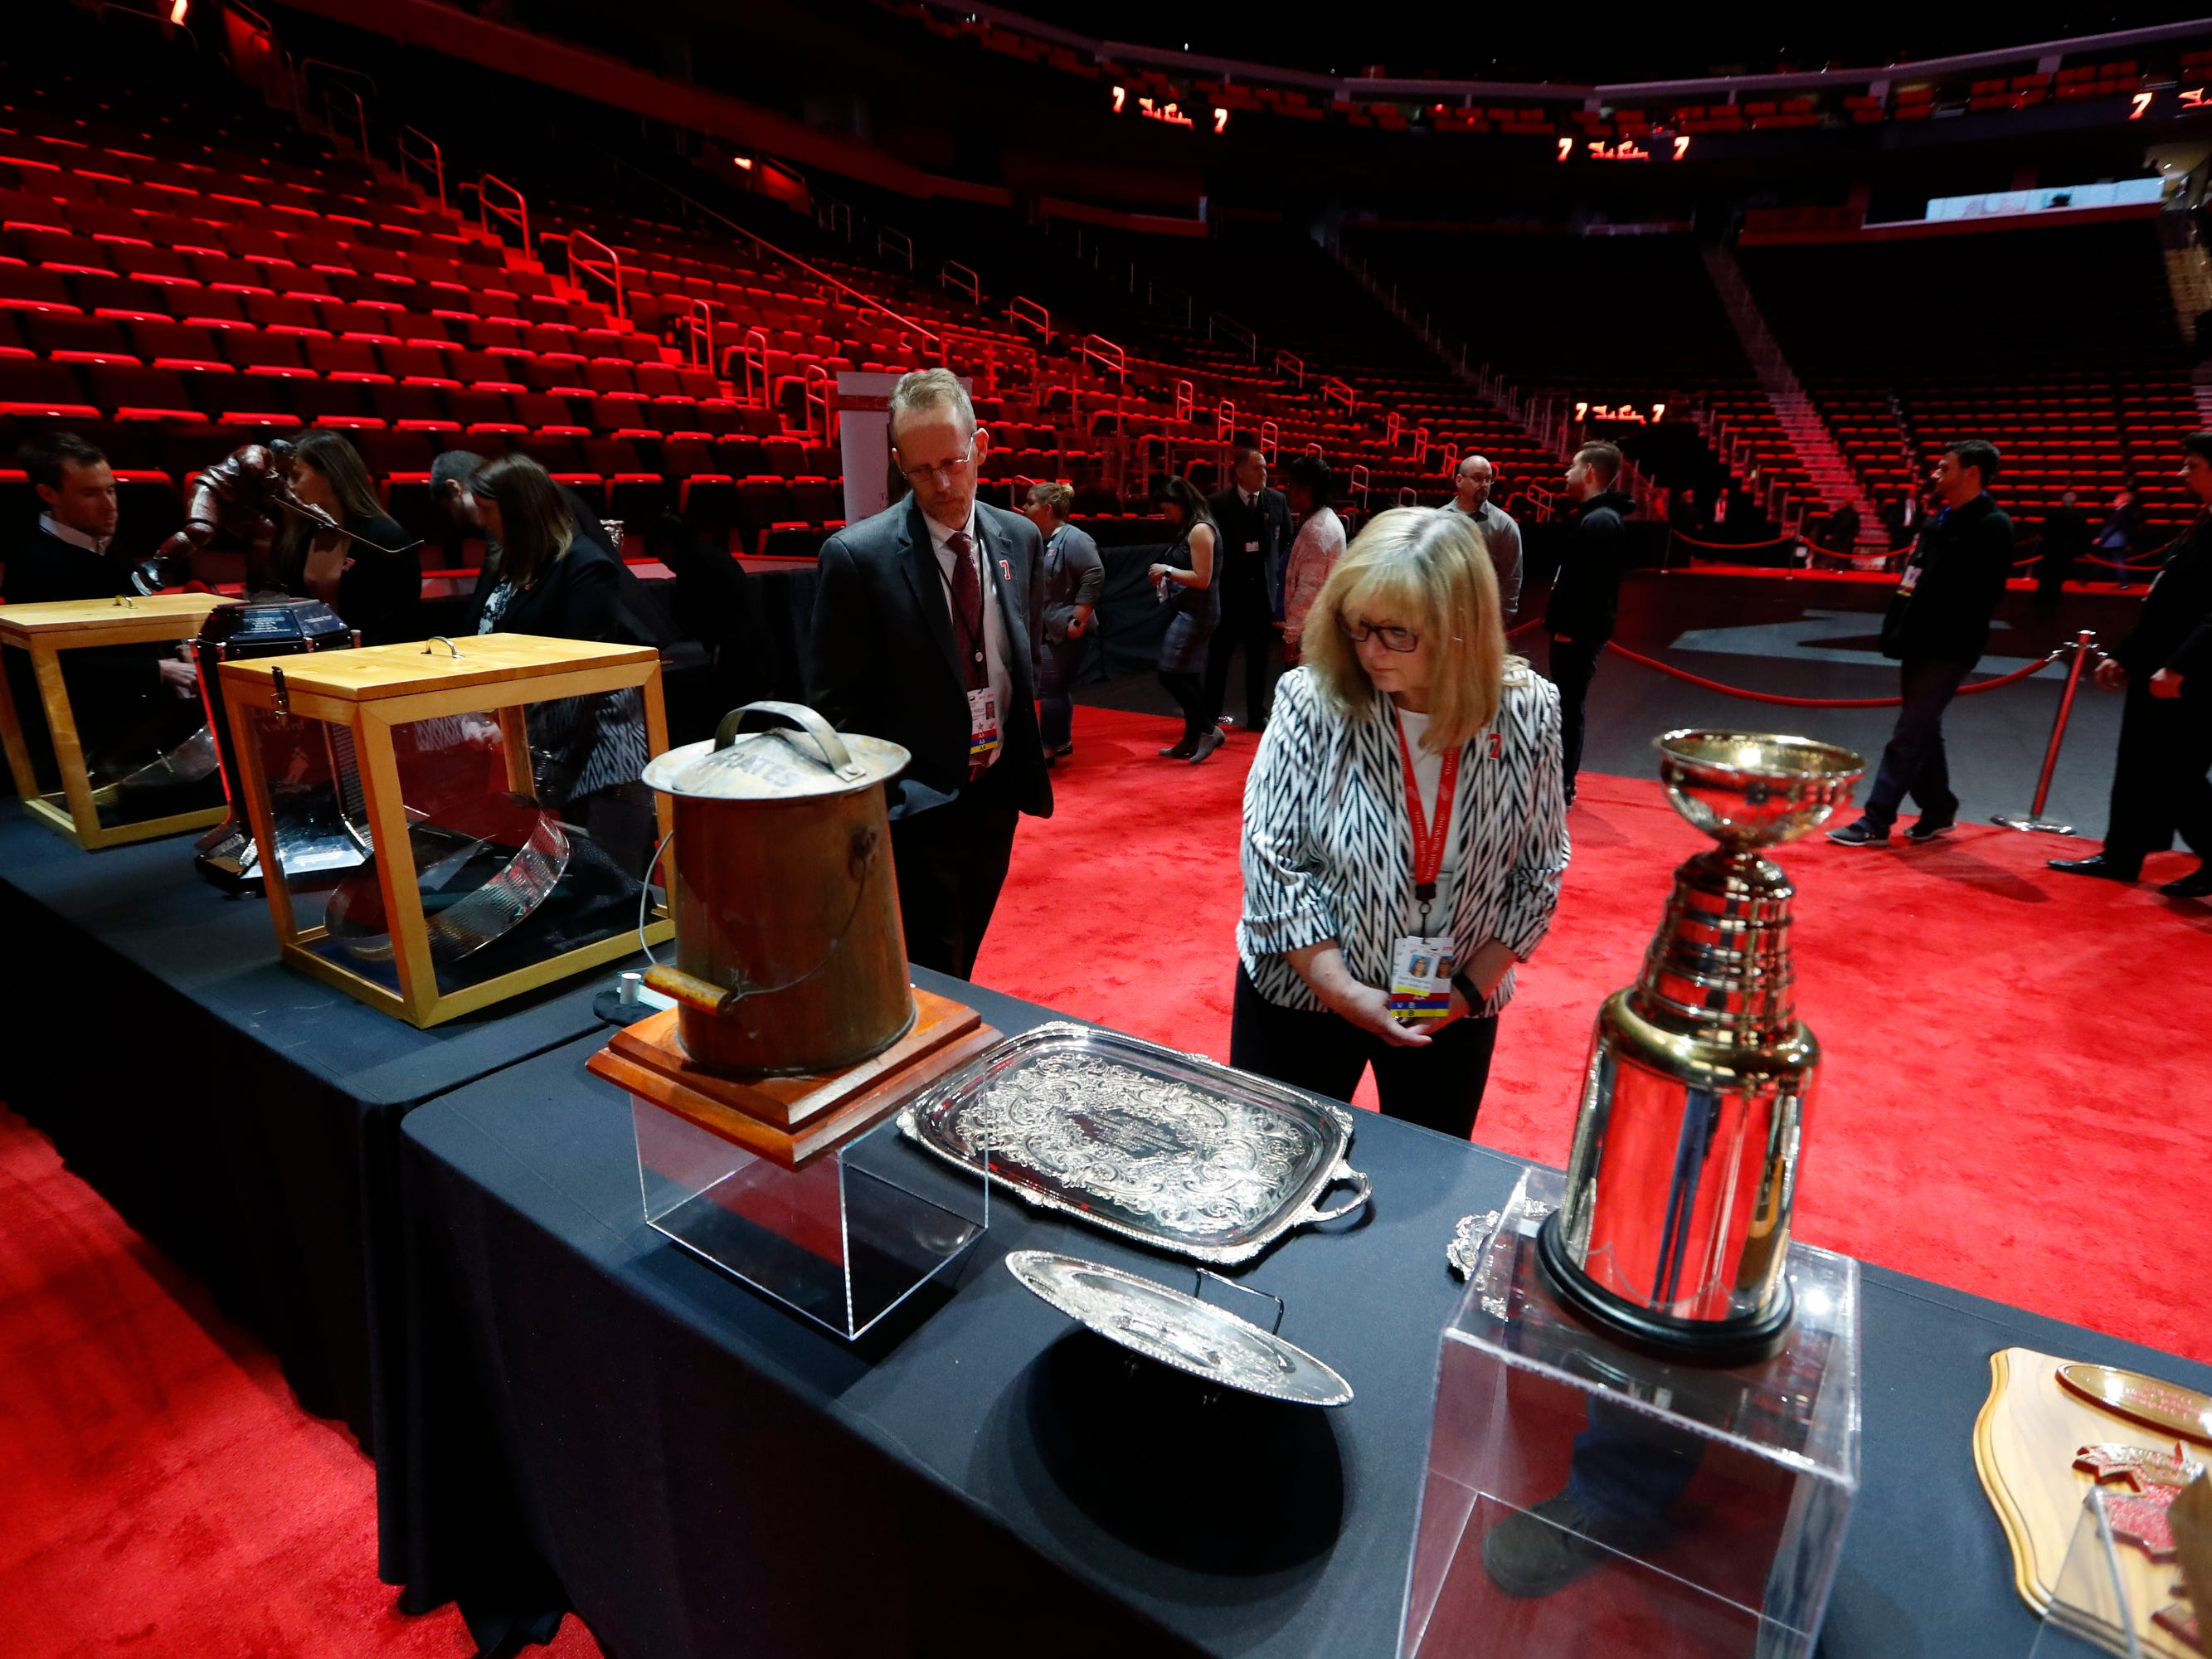 Mourners view memorabilia at the public viewing of former Detroit Red Wings player Ted Lindsay.